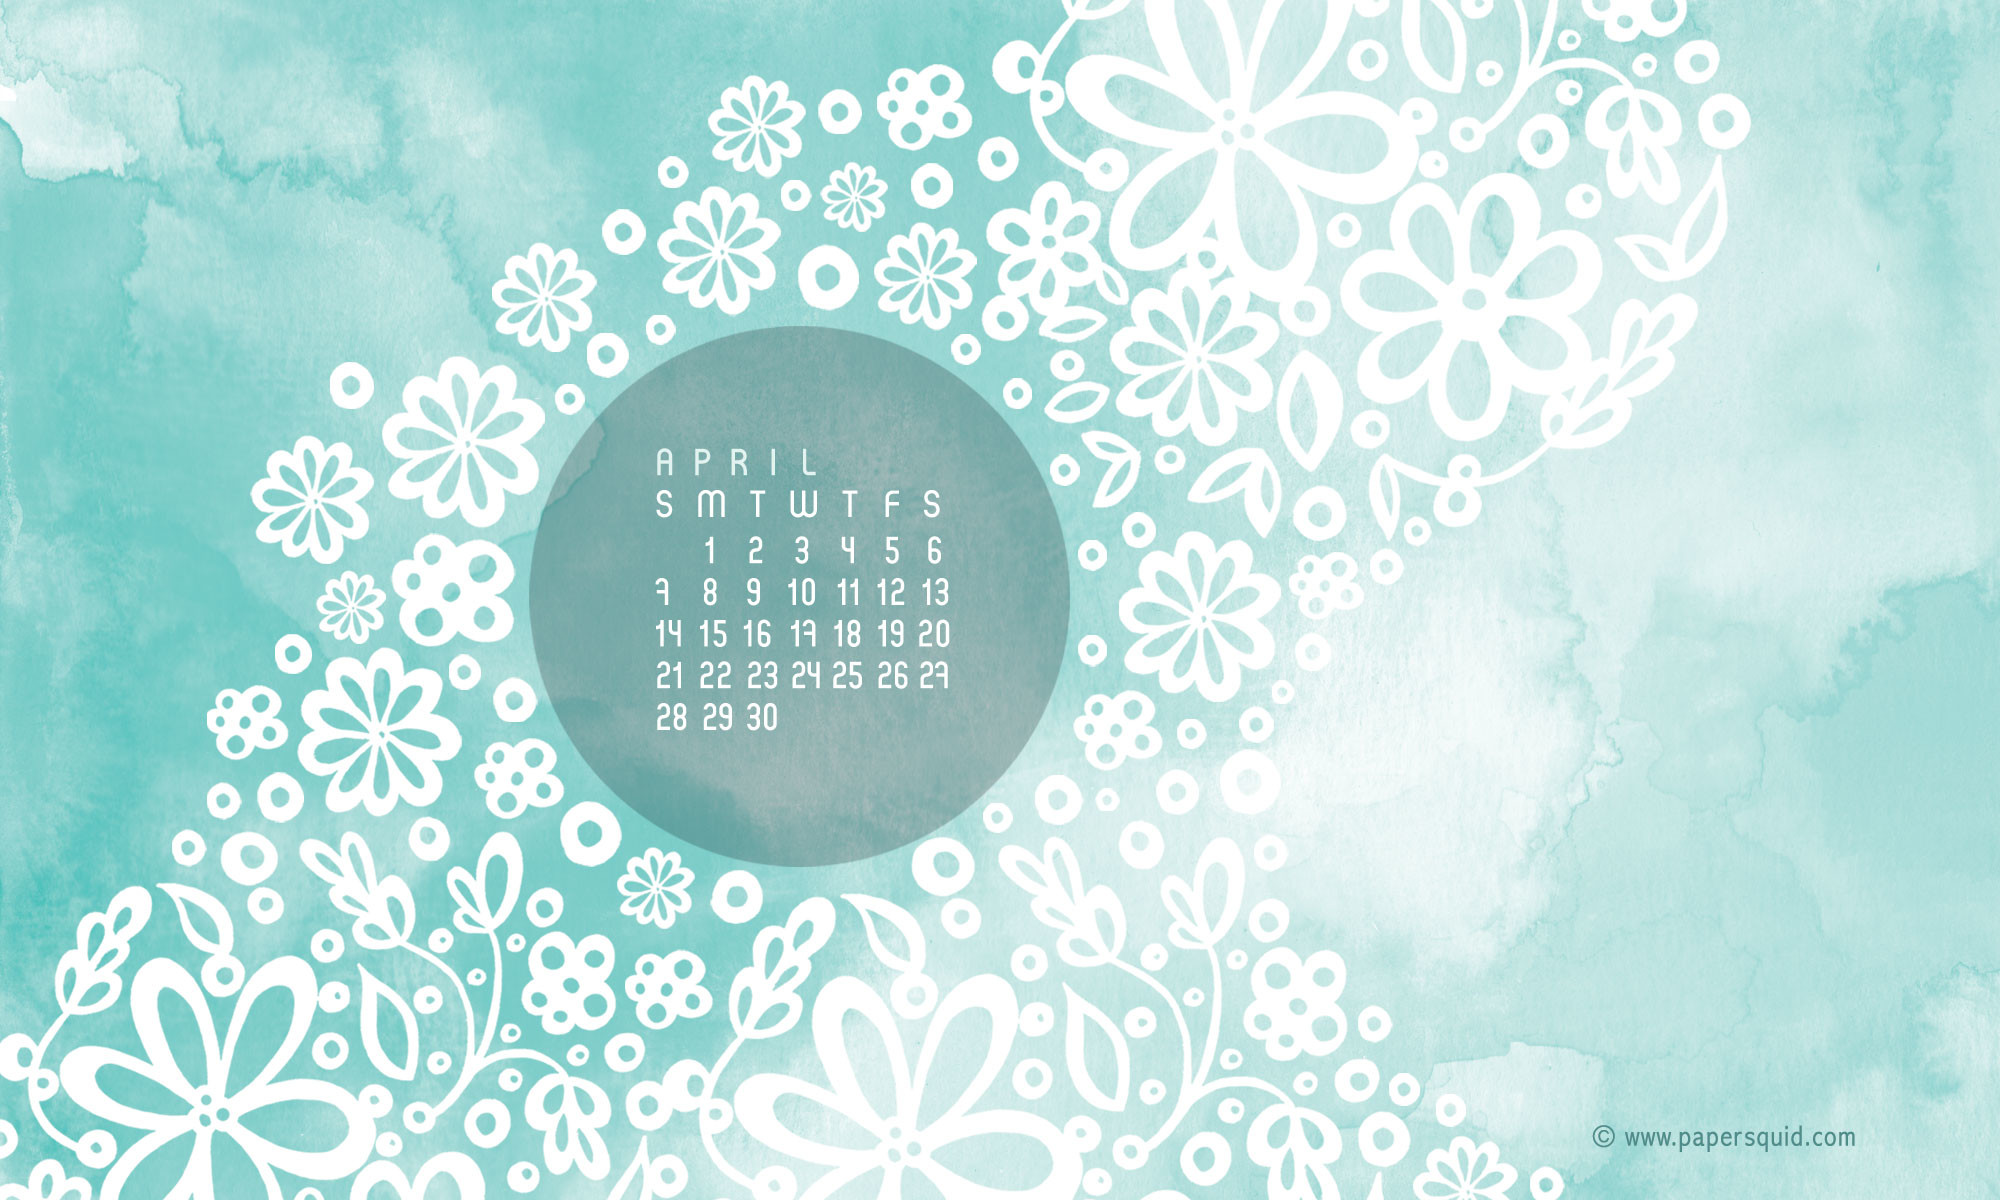 Here is April's free desktop calendar, which you can download here.